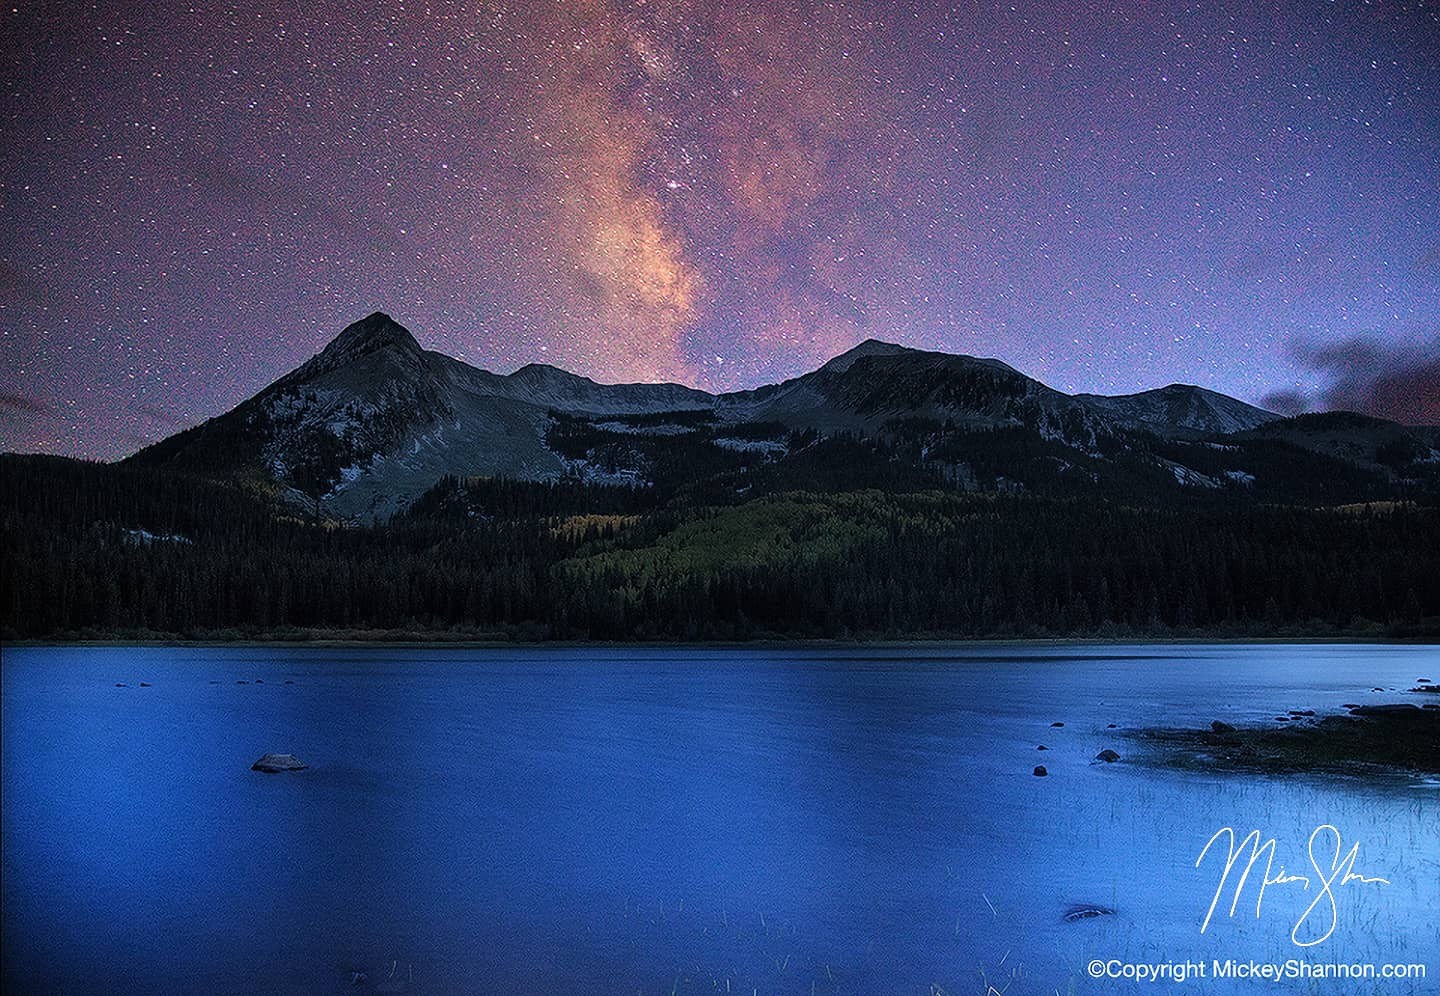 Open edition fine art print of Silent Night Over East Beckwith Mountain from Mickey Shannon Photography. Location: Lost Lake Slough, Kebler Pass, Colorado